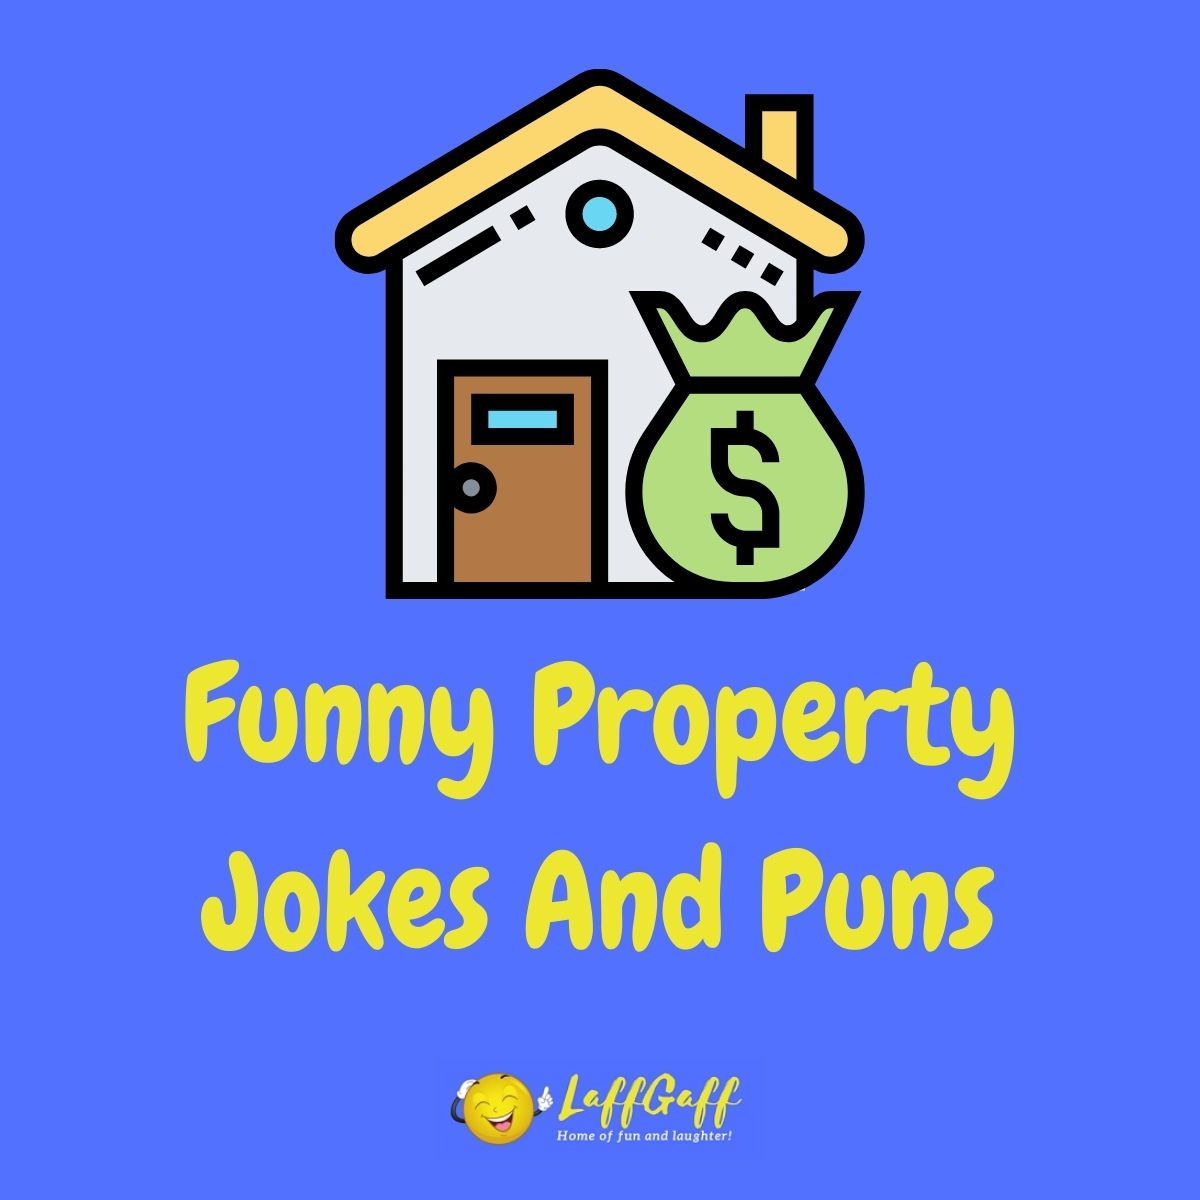 Featured image for a page of funny property jokes and puns.